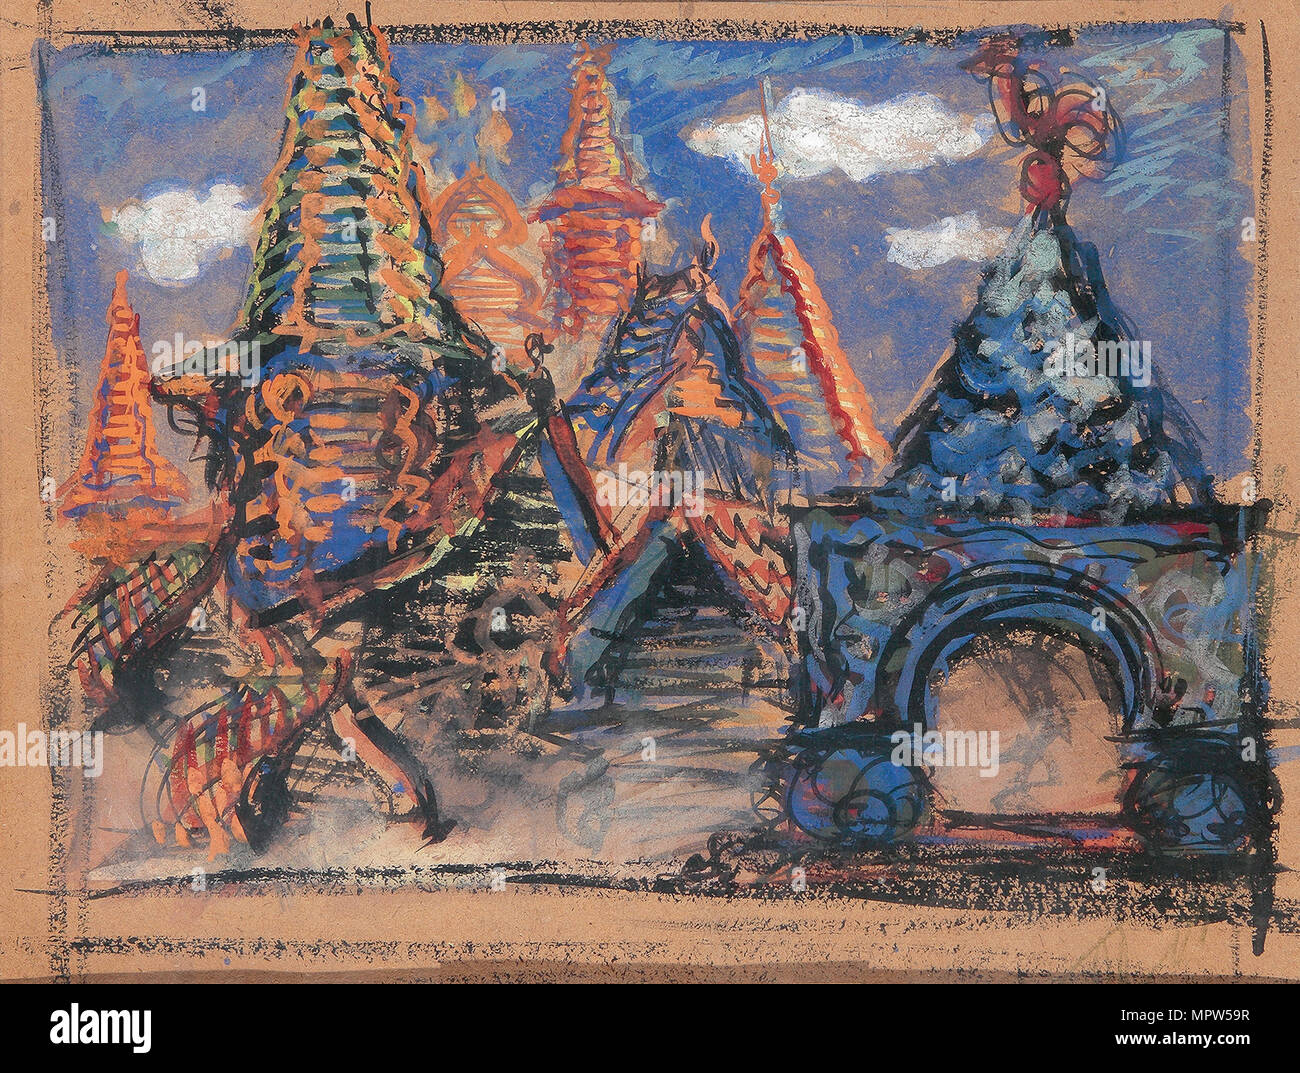 Stage design for the opera Khovanshchina by M, Musorgsky, 1902. - Stock Image